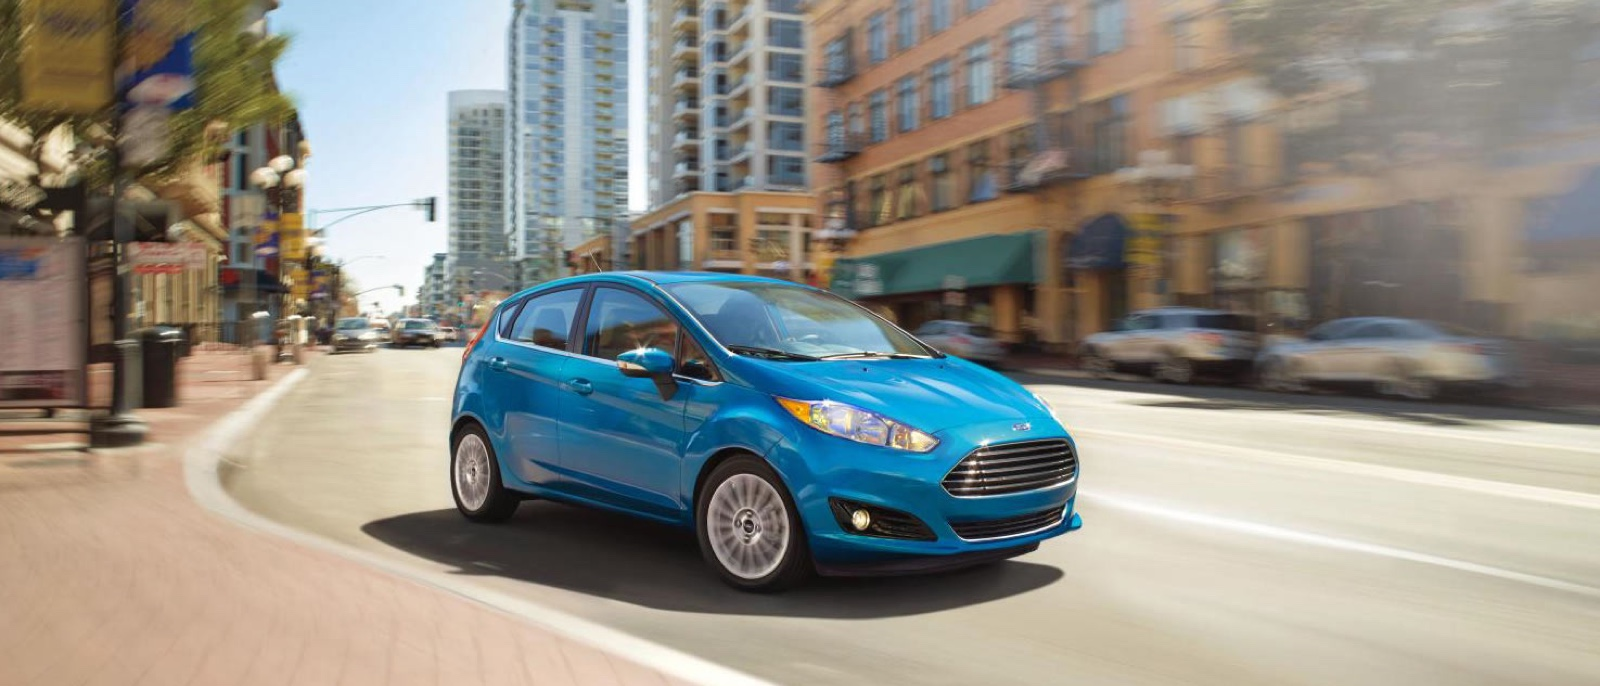 the 2016 ford fiesta mpg ratings are amazing river view ford. Black Bedroom Furniture Sets. Home Design Ideas